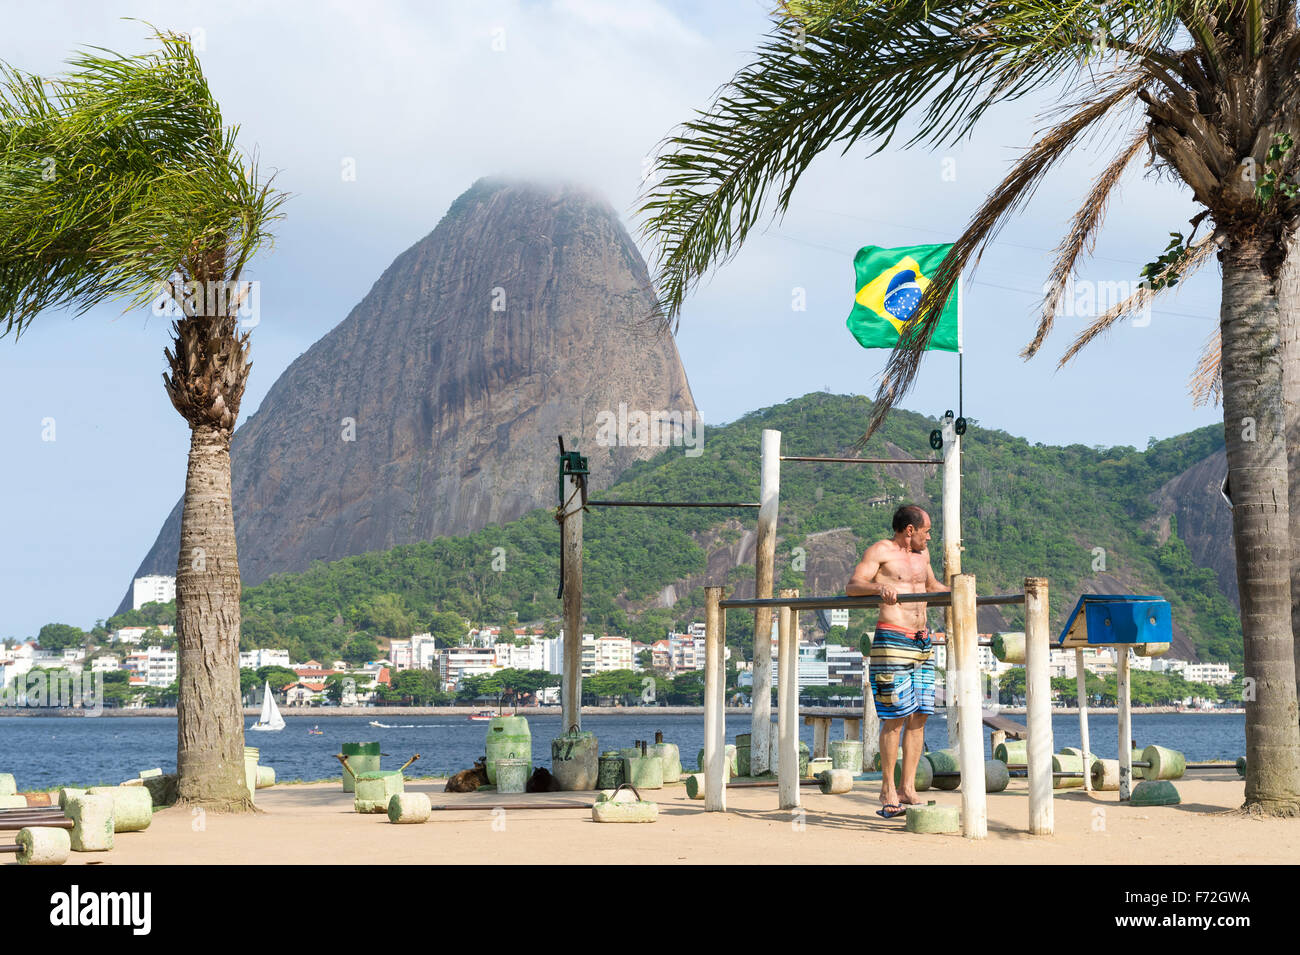 RIO DE JANEIRO, BRAZIL - OCTOBER 17, 2015: Brazilian man exercises at an outdoor workout station in the Flamengo - Stock Image